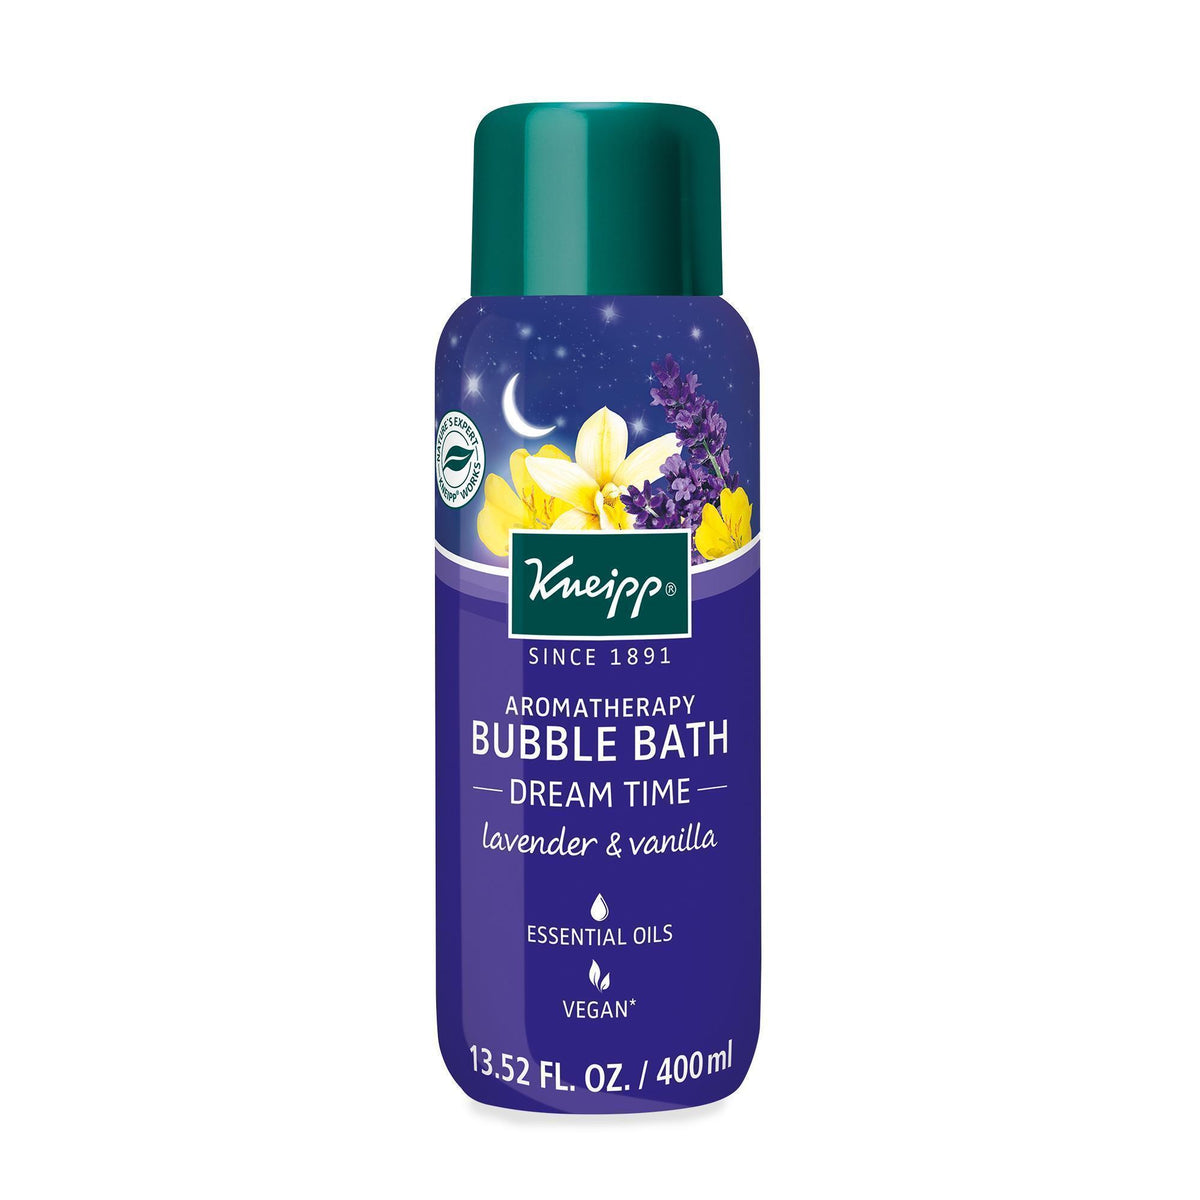 Kneipp Dream Time Bubble Bath 13.52 Fl. Oz.